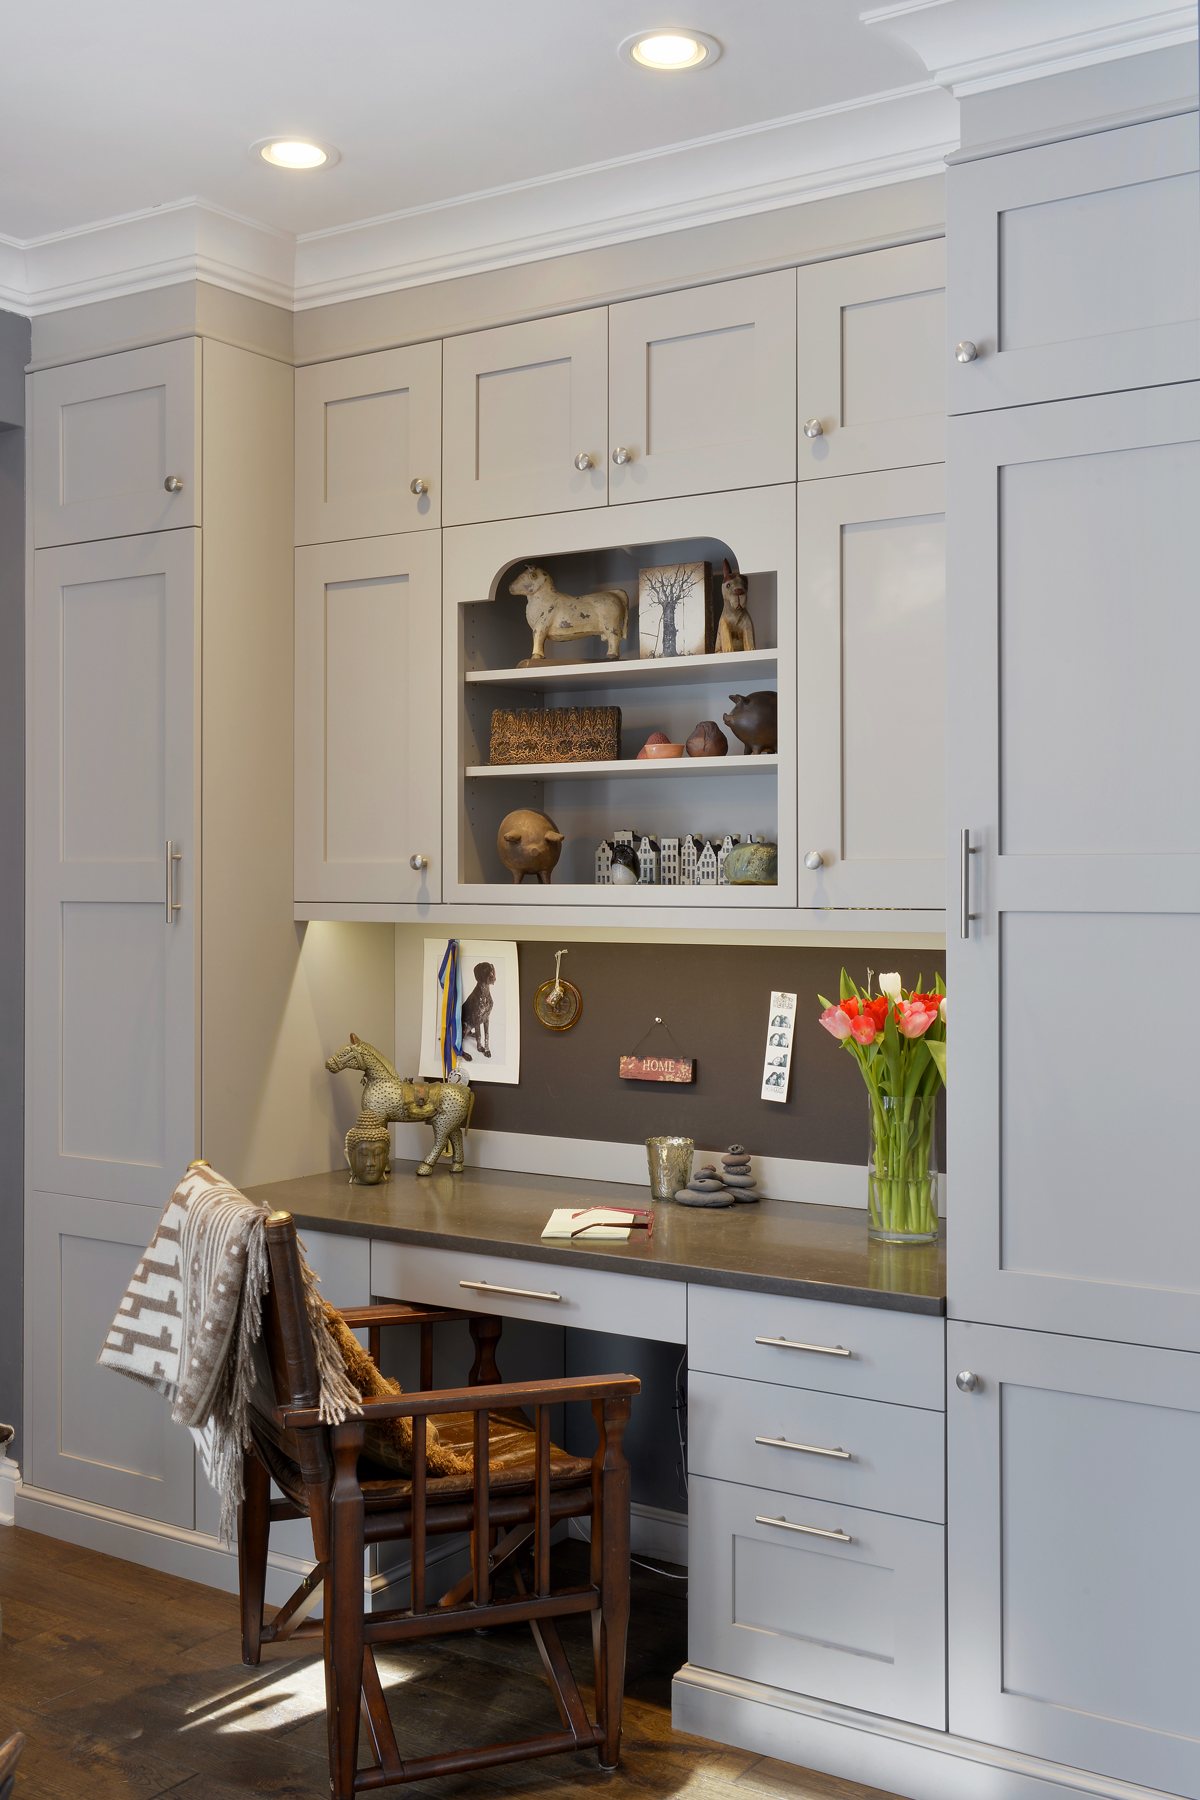 Desk area features custom light grey painted Bilotta Cabinetry with brushed stainless hardware, black quartz top and back cork board backsplash. Open shelving with custom cutout provides a small display area. Design by Paulette Gambacorta of Bilotta Kitchens.